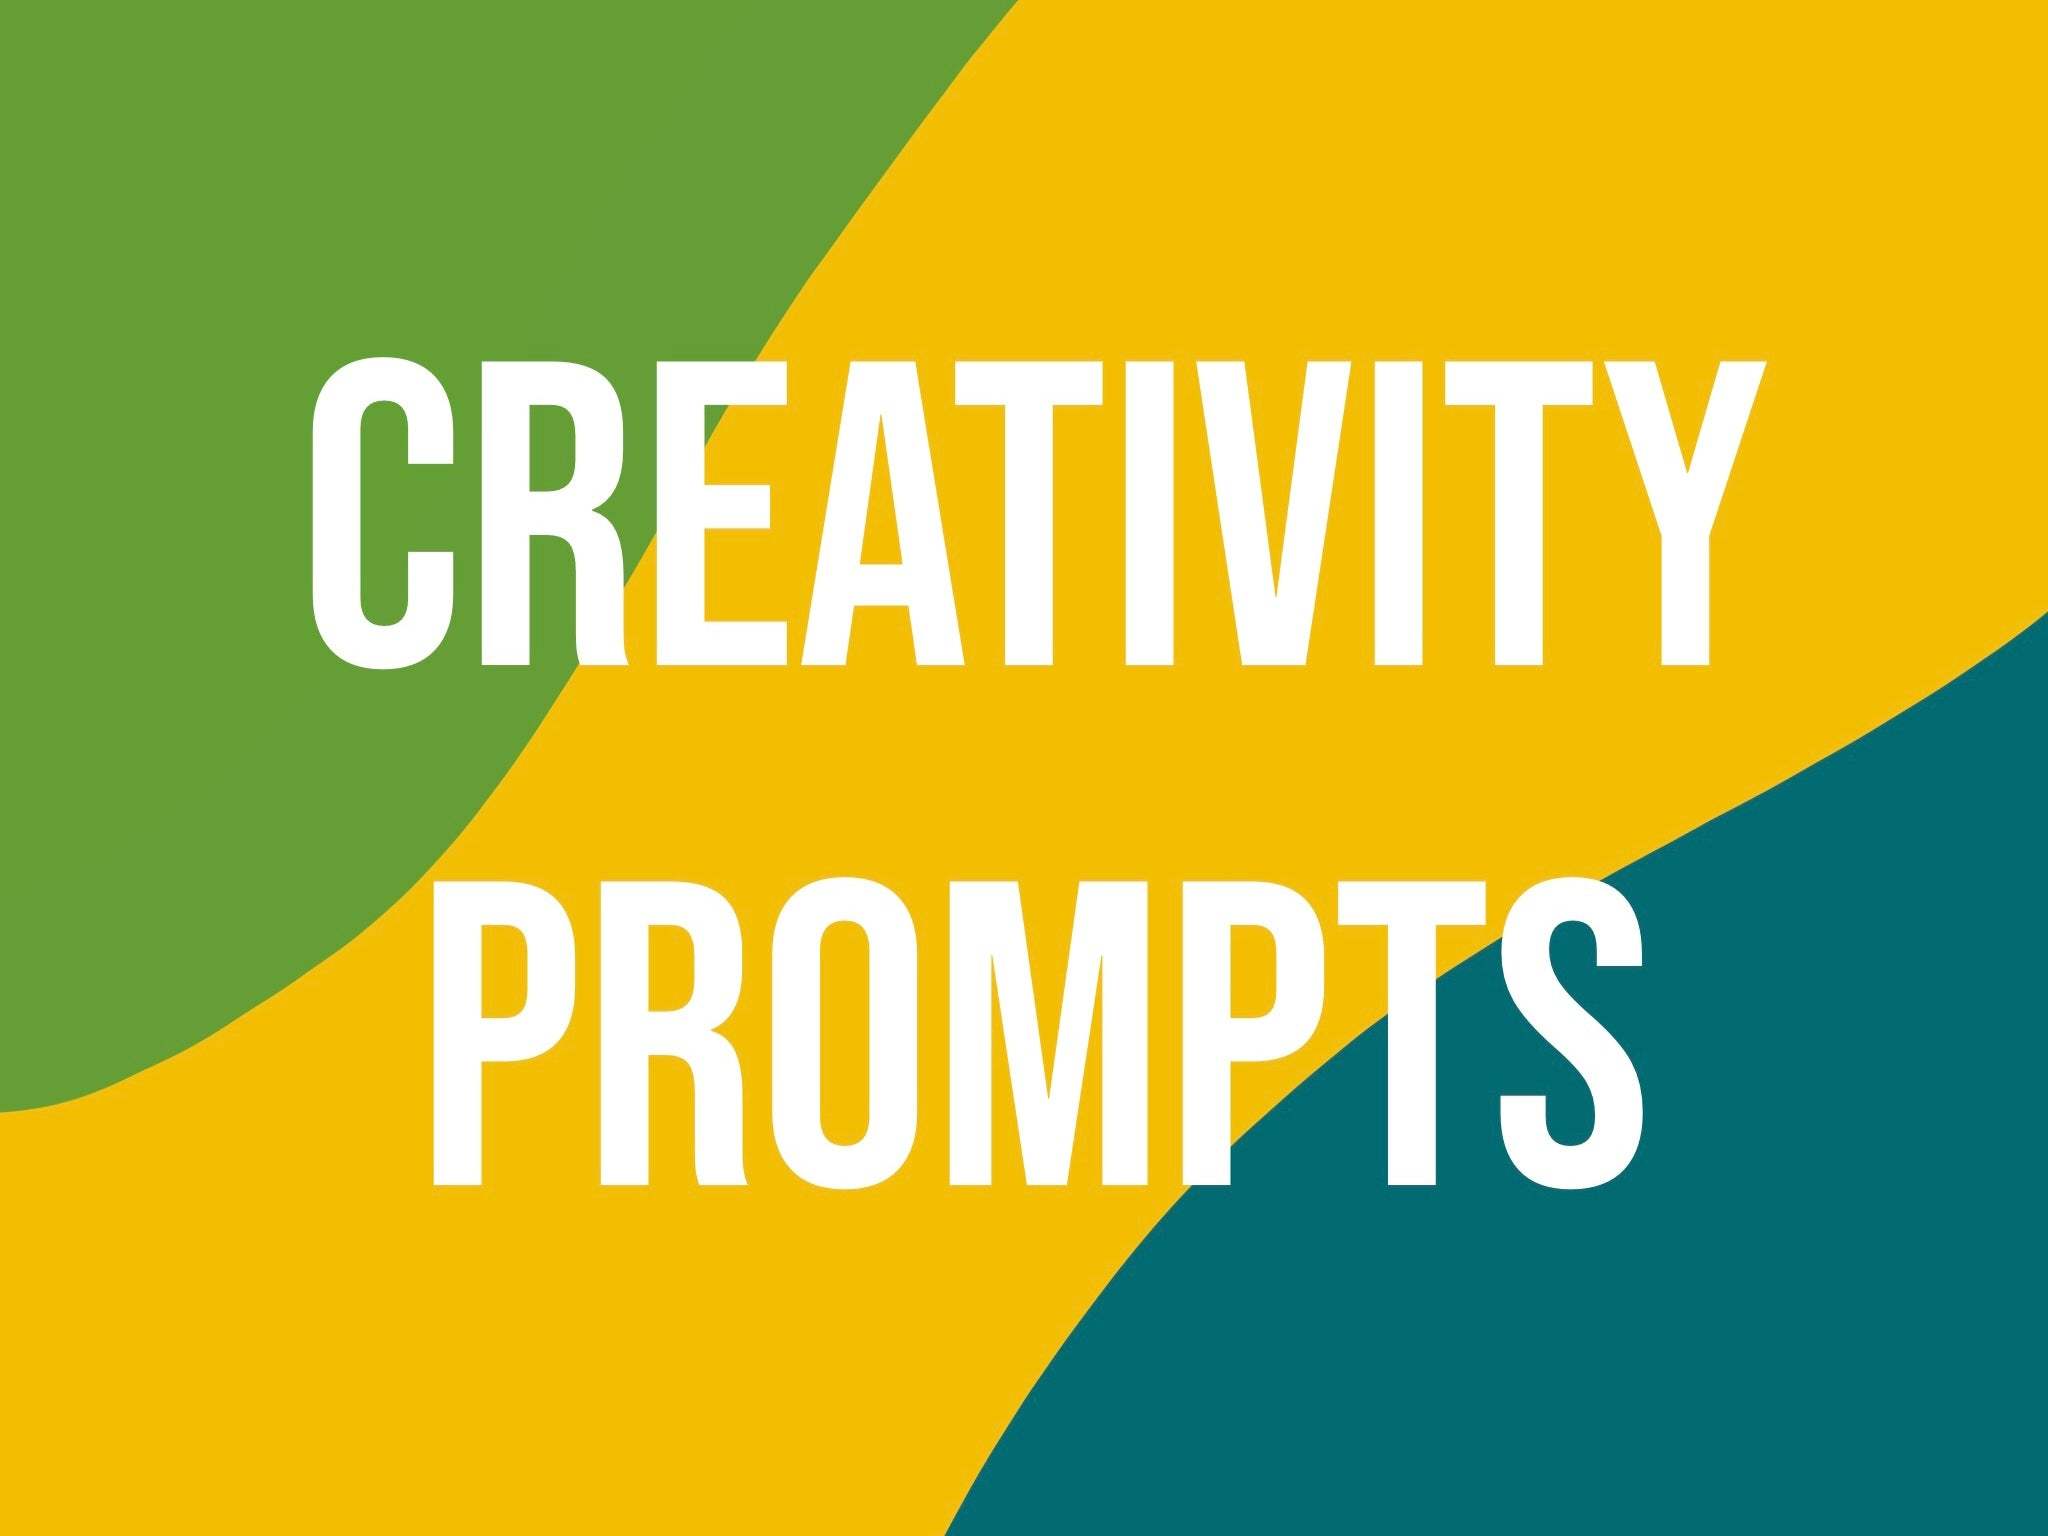 March Creativity Prompts